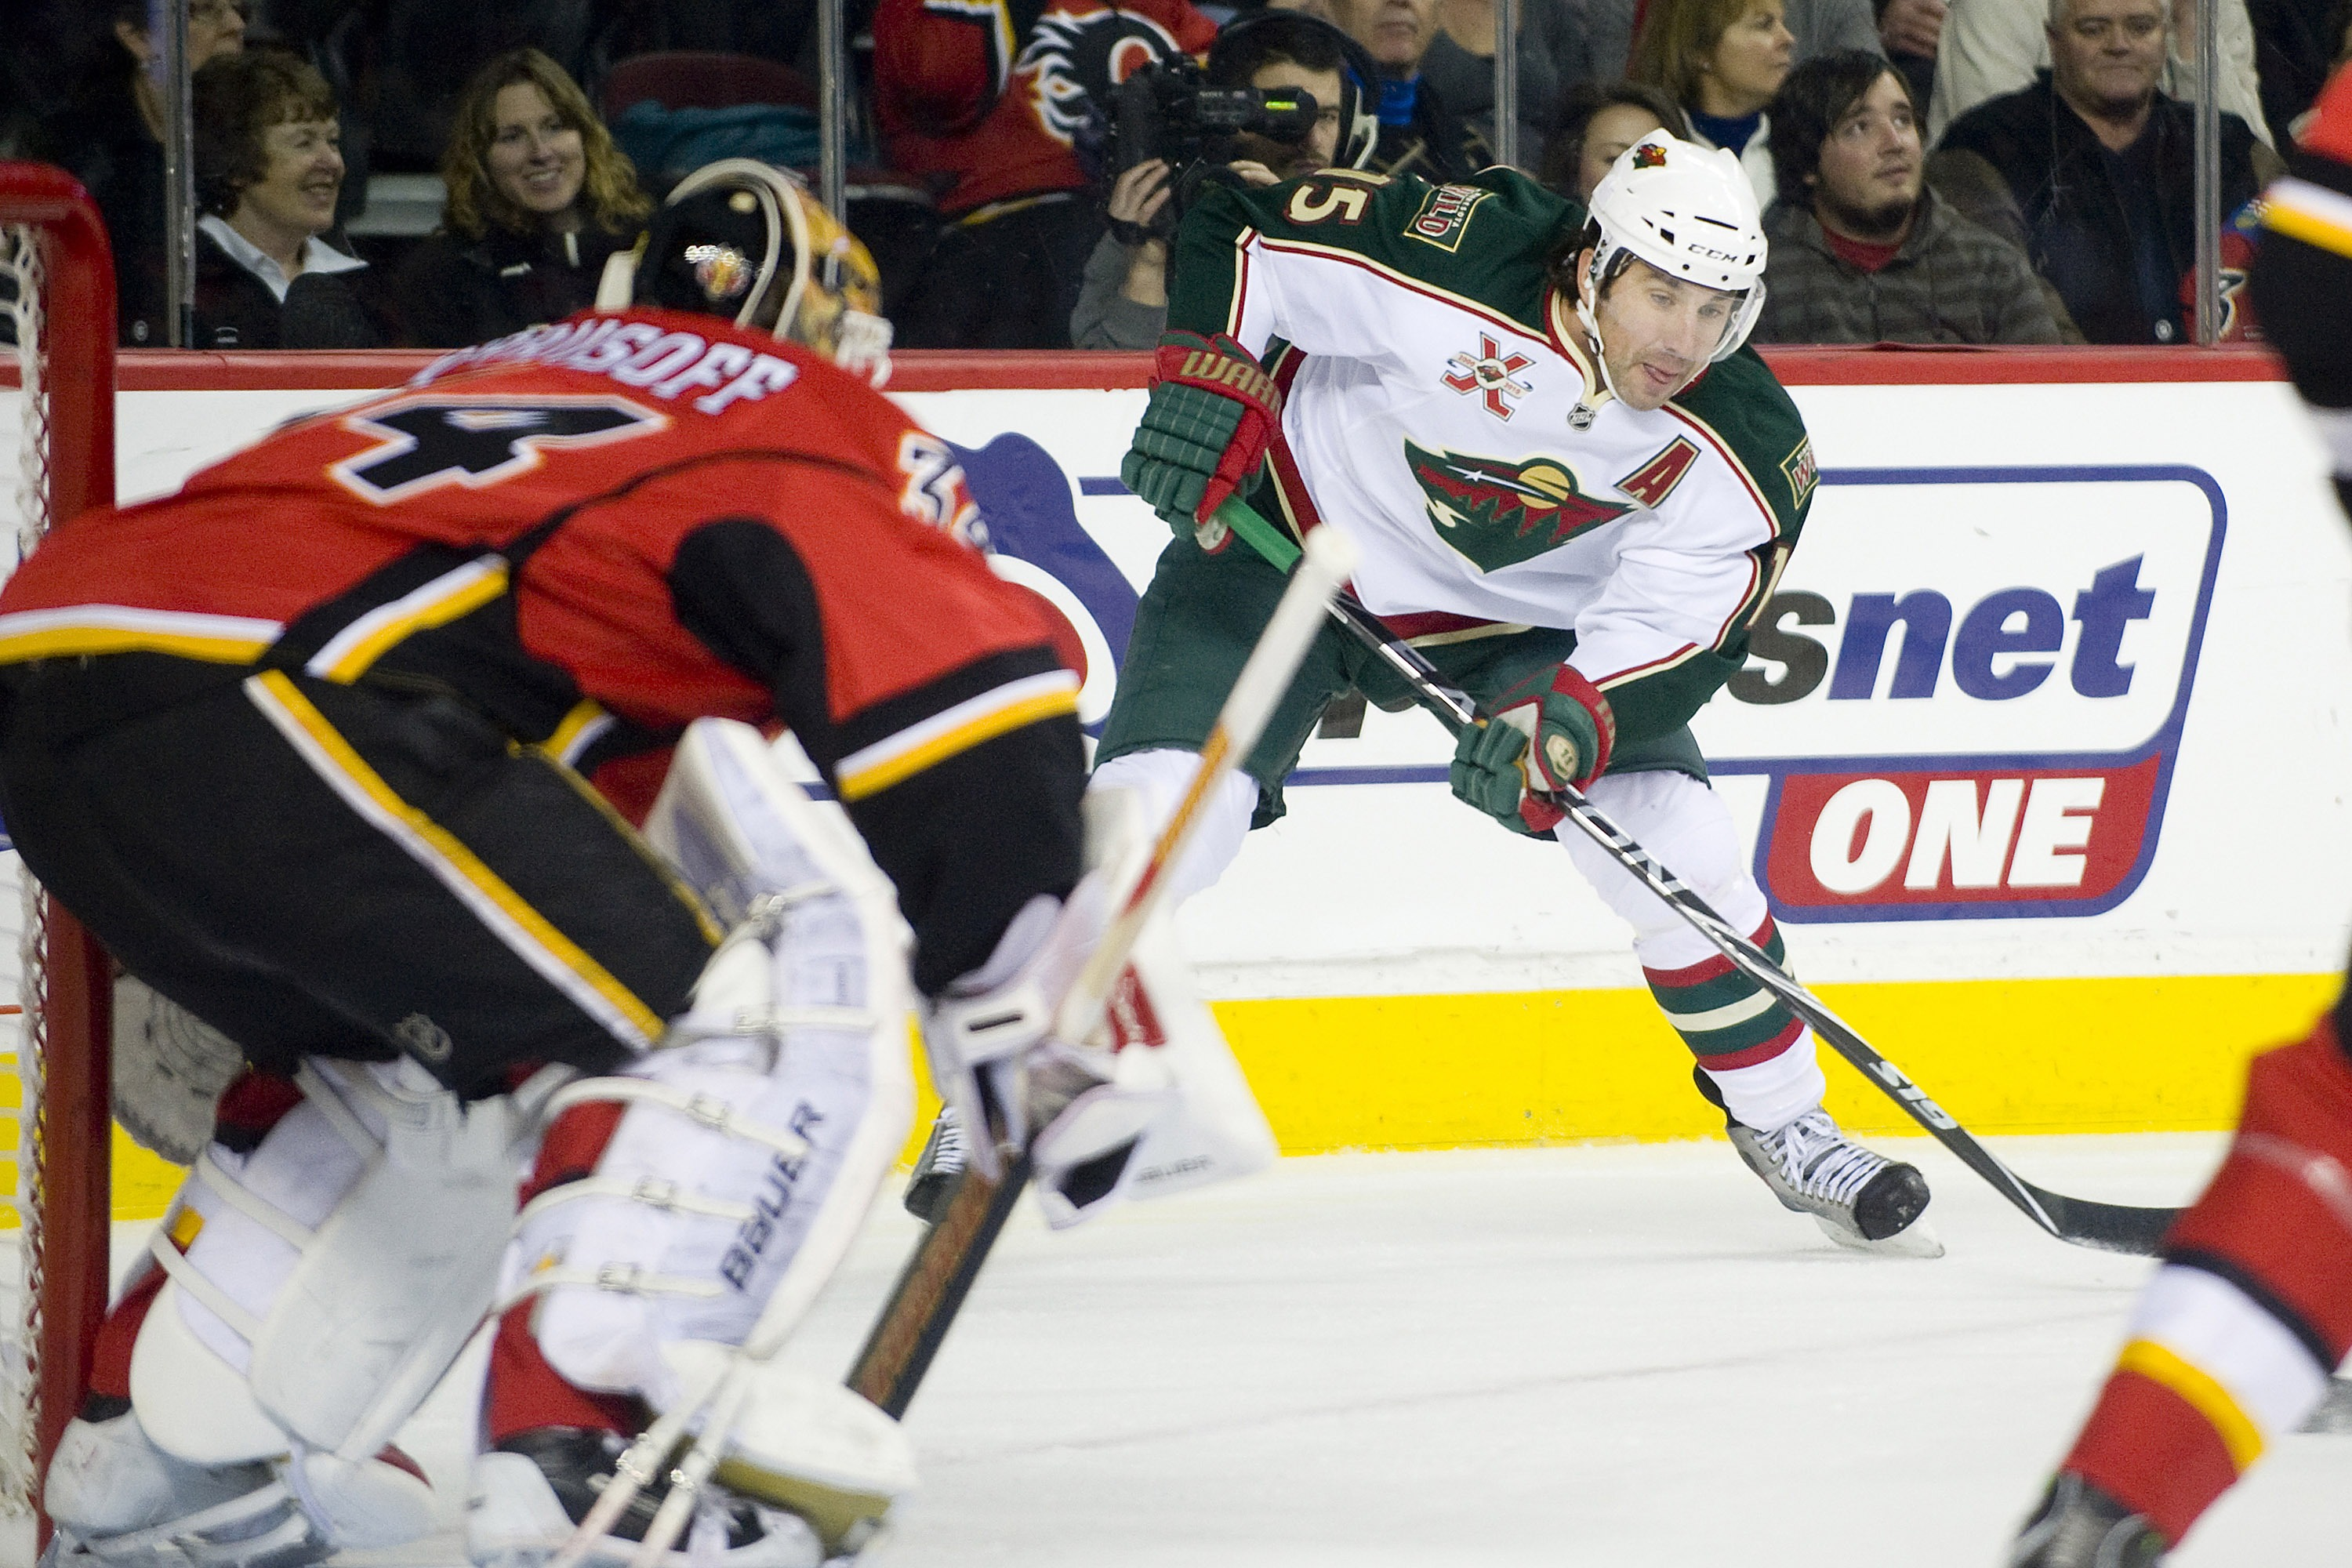 EDMONTON, AB - NOVEMBER 29:  Andrew Brunette #15 of the Minnesota Wild carries the puck in the corner against the Calgary Flames at Scotiabank Saddledome on November 29, 2010 in Calgary, Alberta, Canada. The Flames beat the Wild 3-0.  (Photo by Dylan Lync